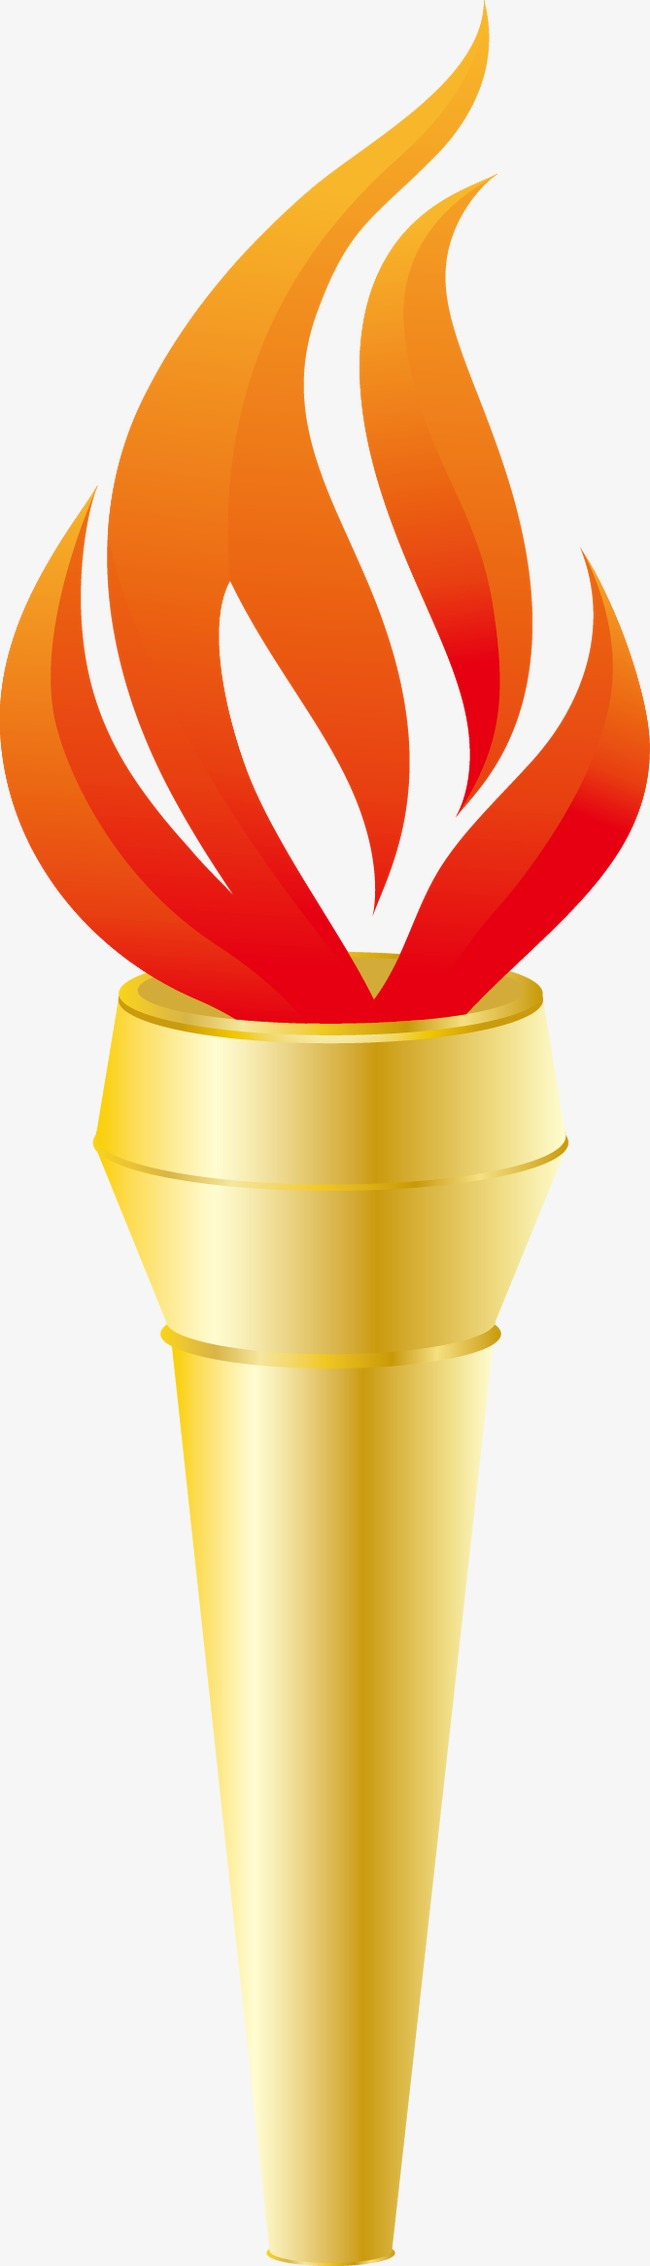 Olympic Torch Clipart at GetDrawings.com.